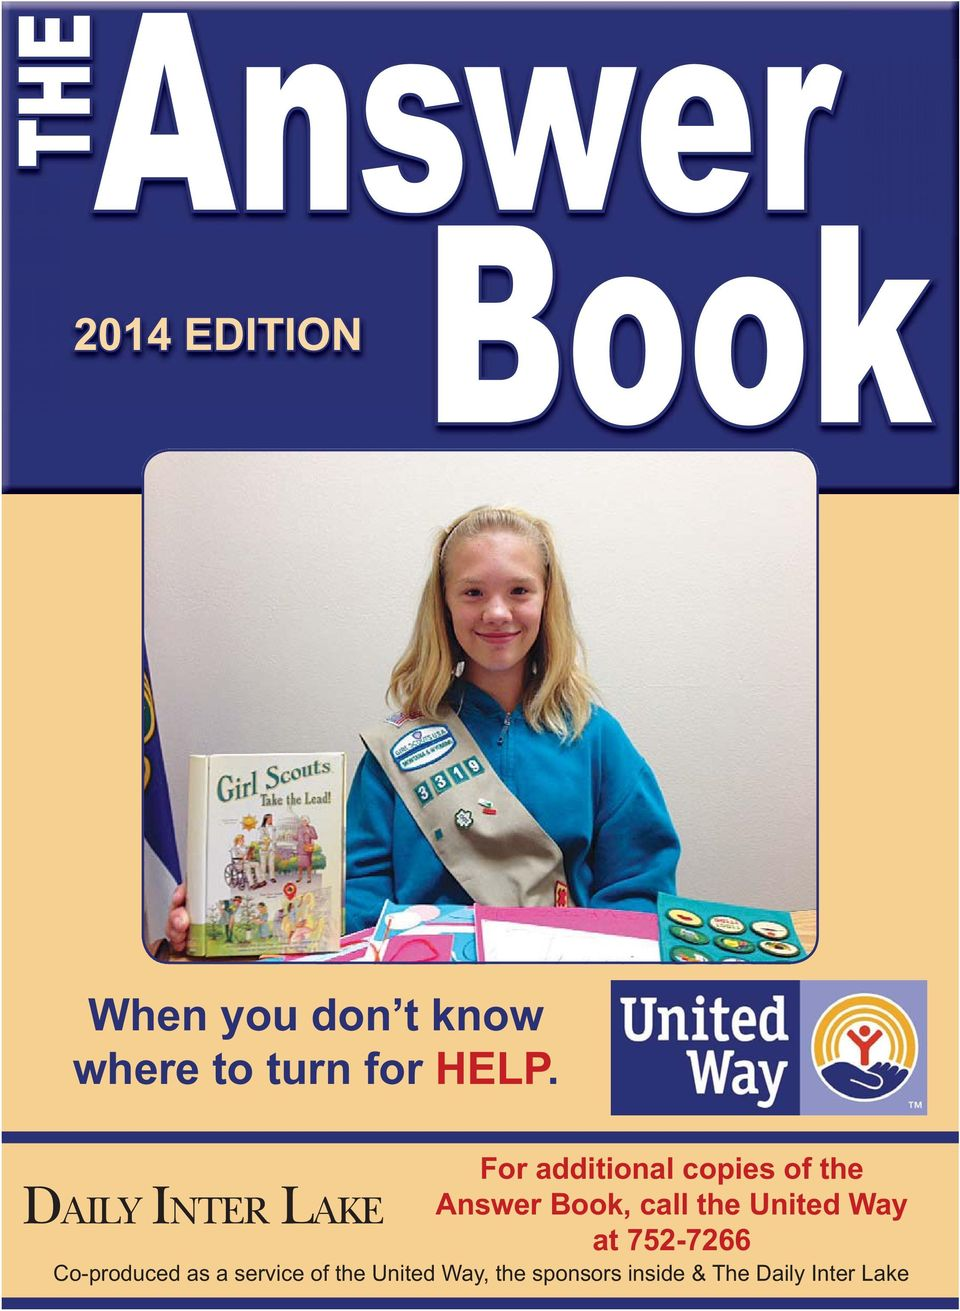 DAILY INTER LAKE For additional copies of the Answer Book,